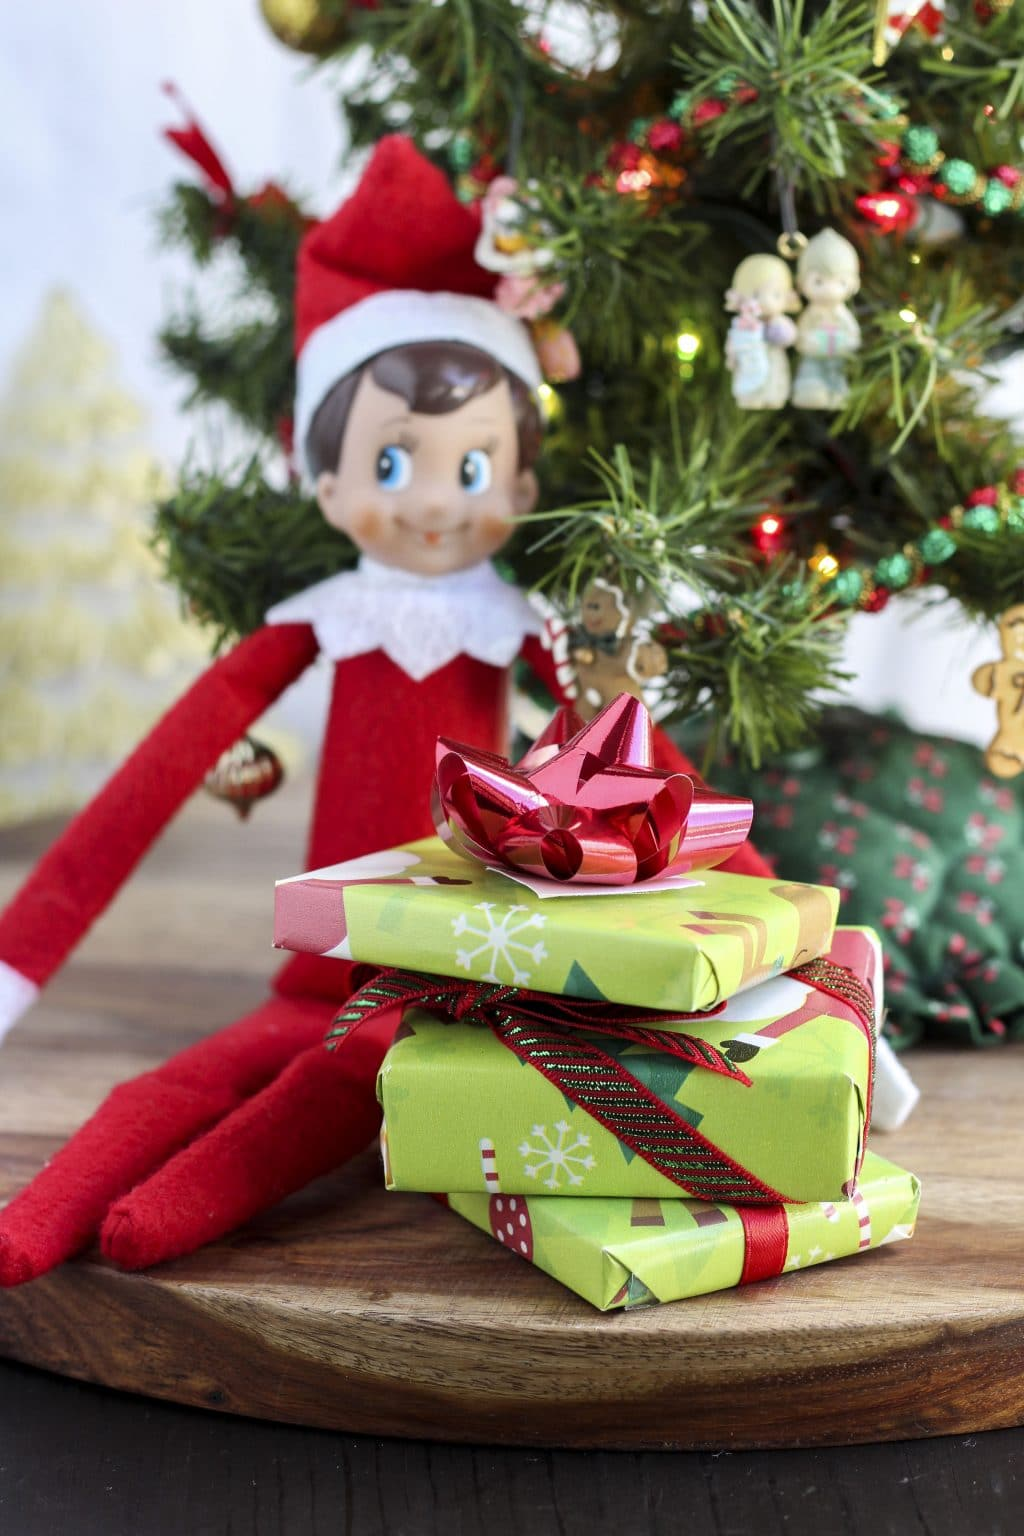 Elf on the Shelf Christmas Gift Idea